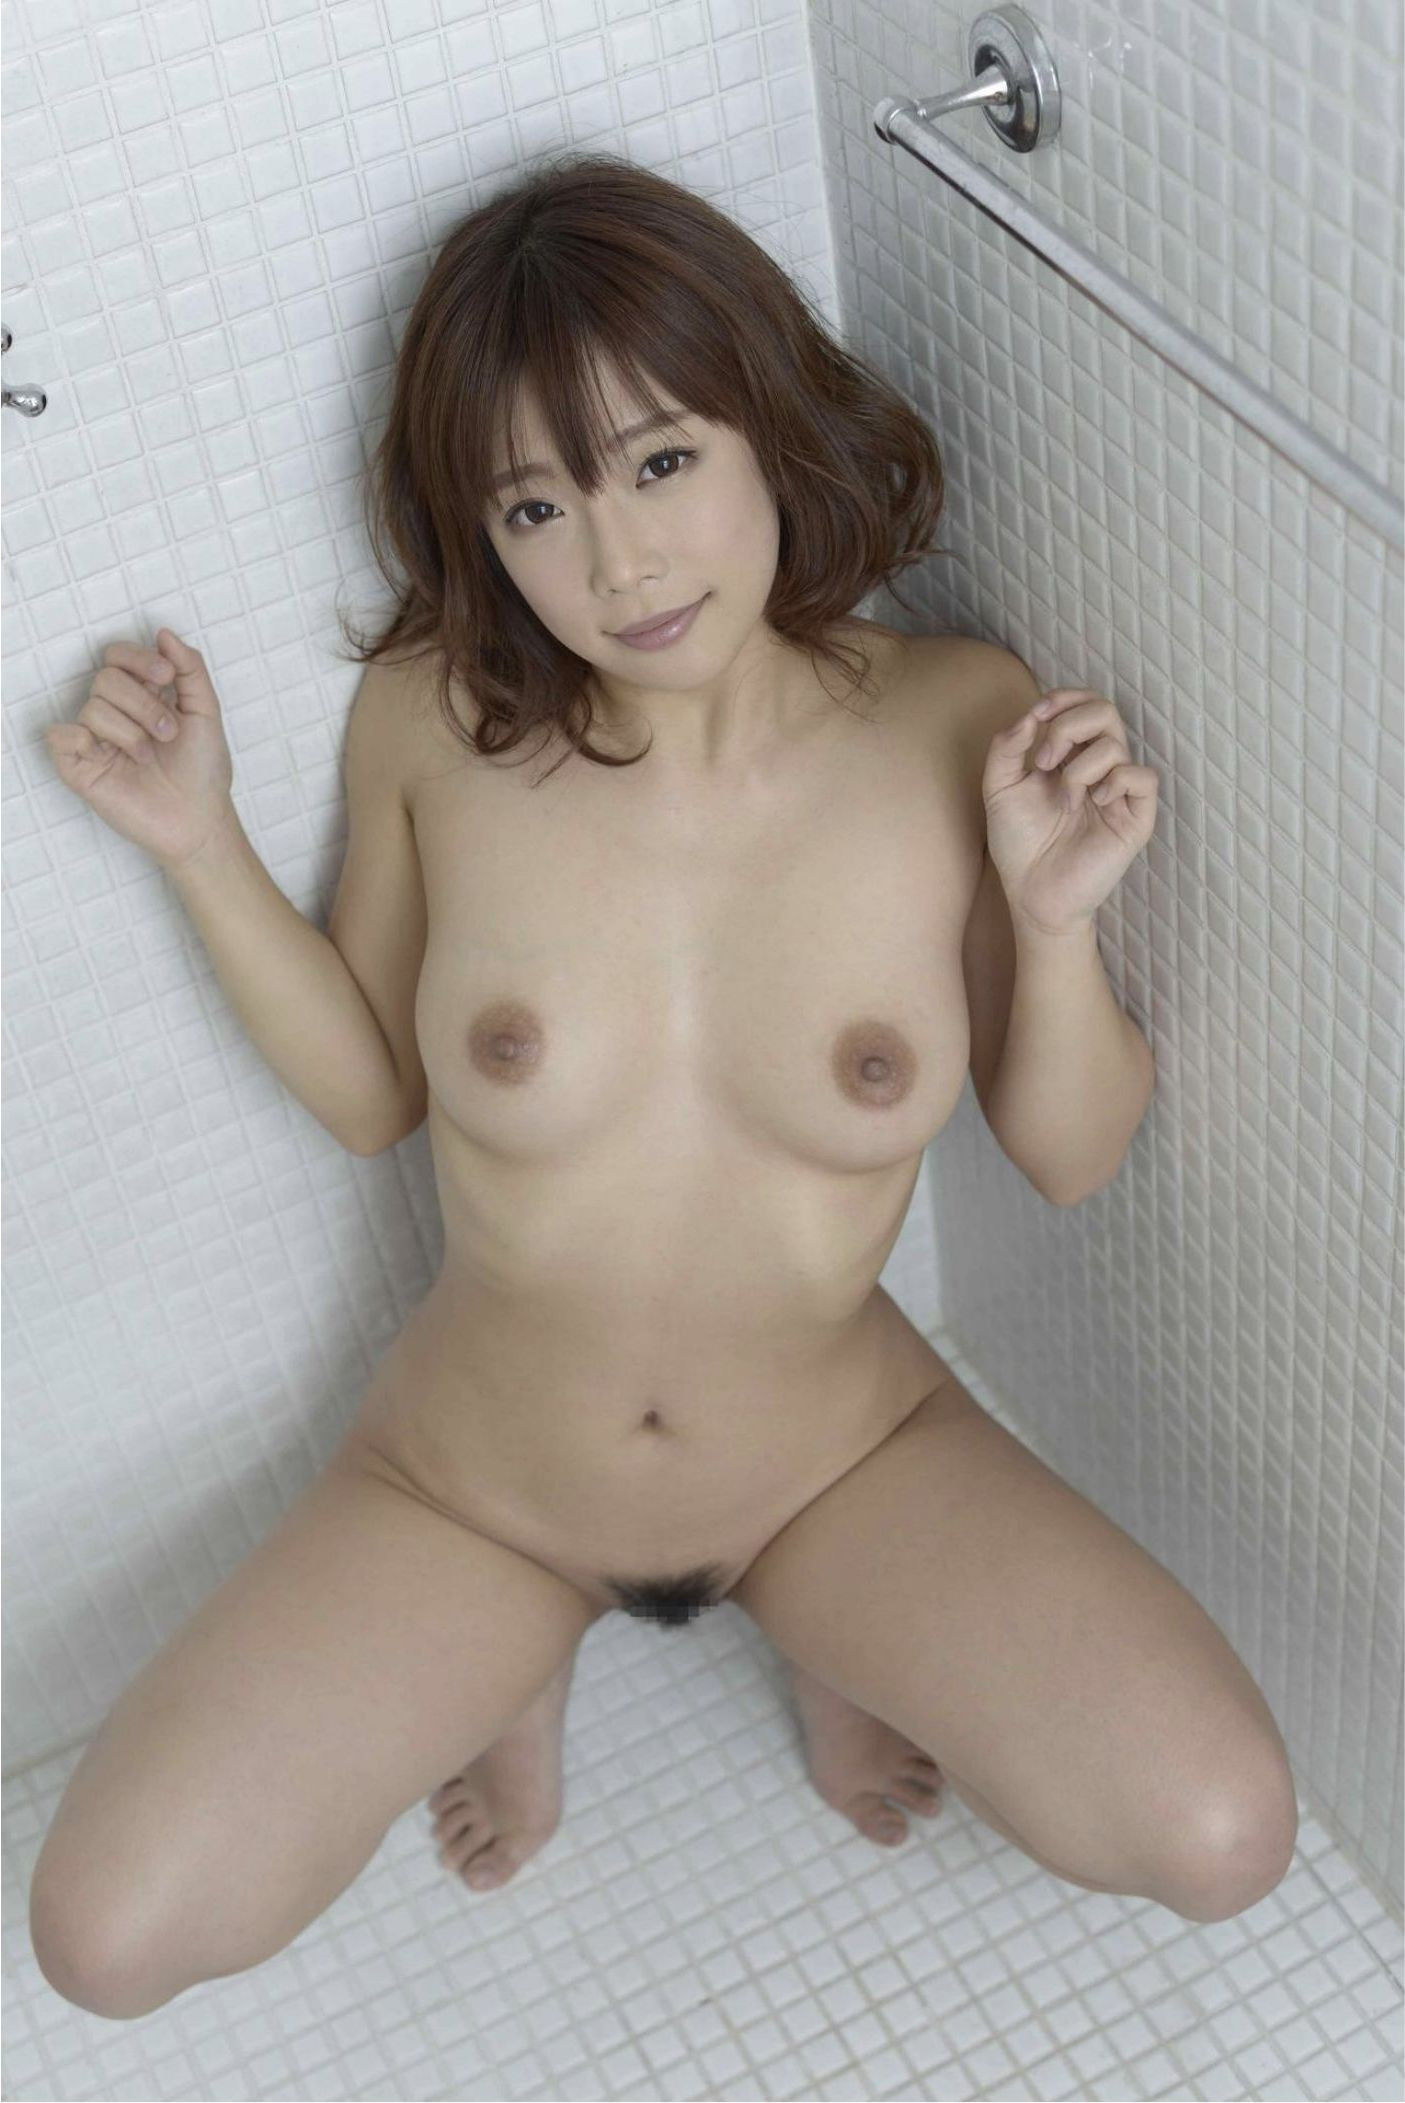 SOFT ON DEMAND GRAVURE COLLECTION 紗倉まな02 photo 131